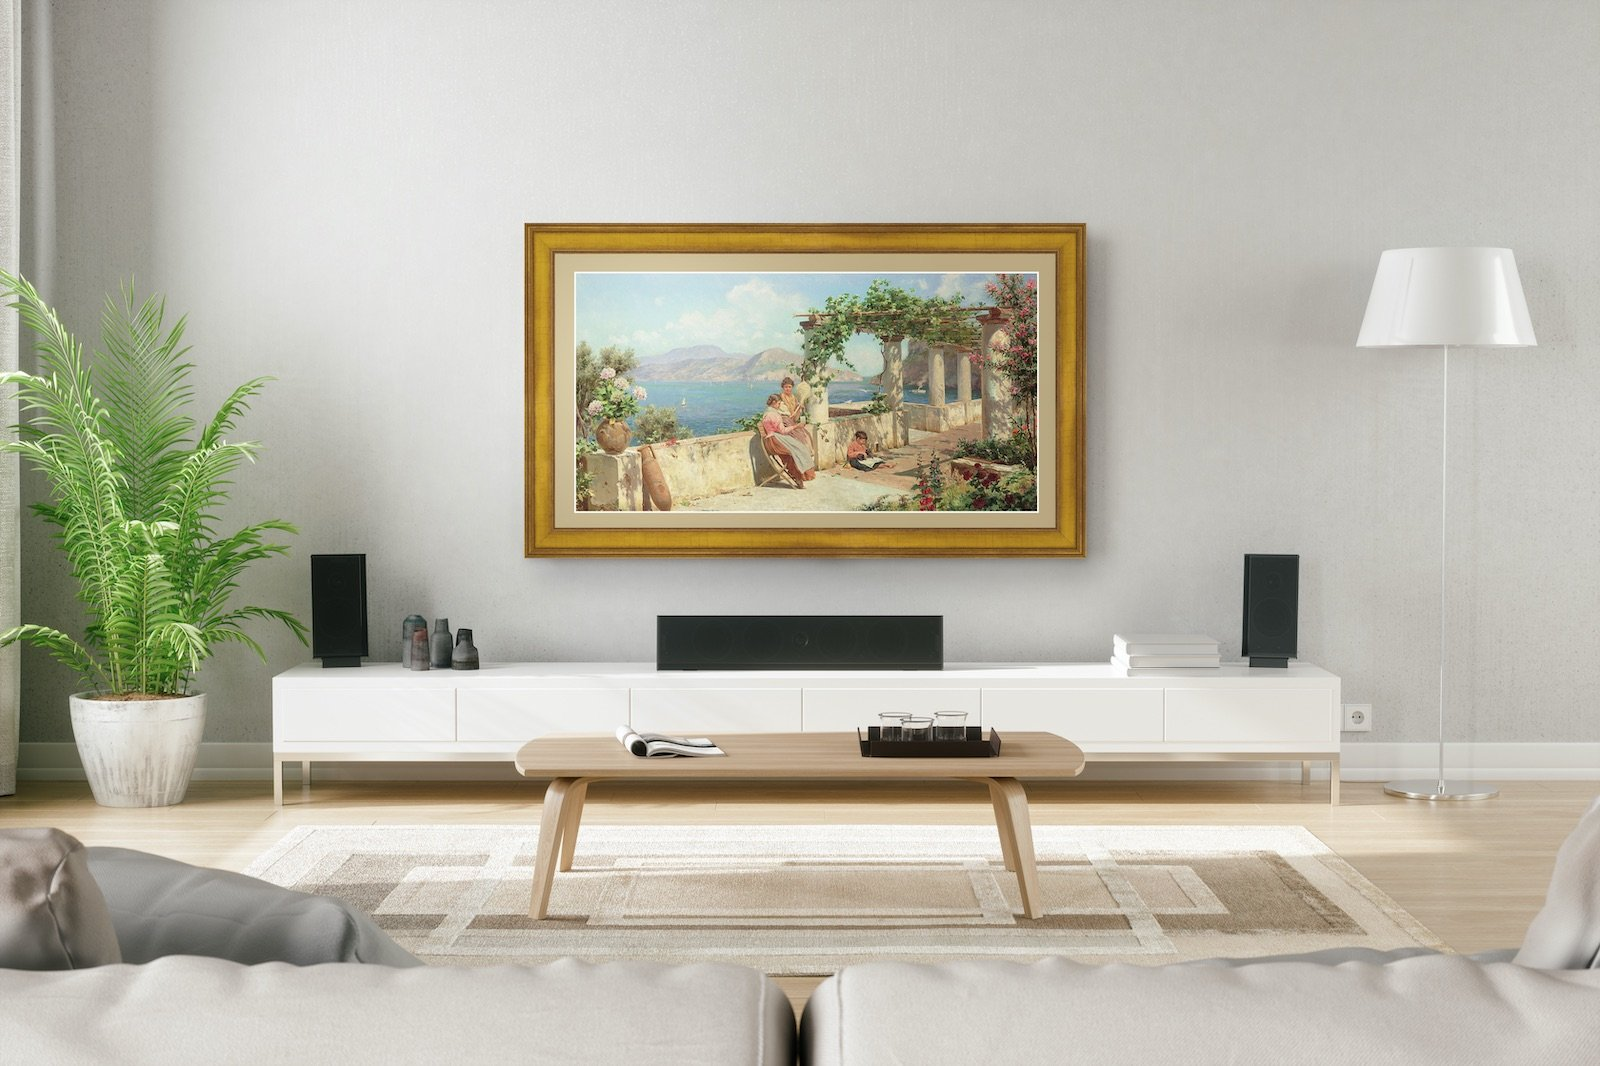 samsung the frame tv for art collectors